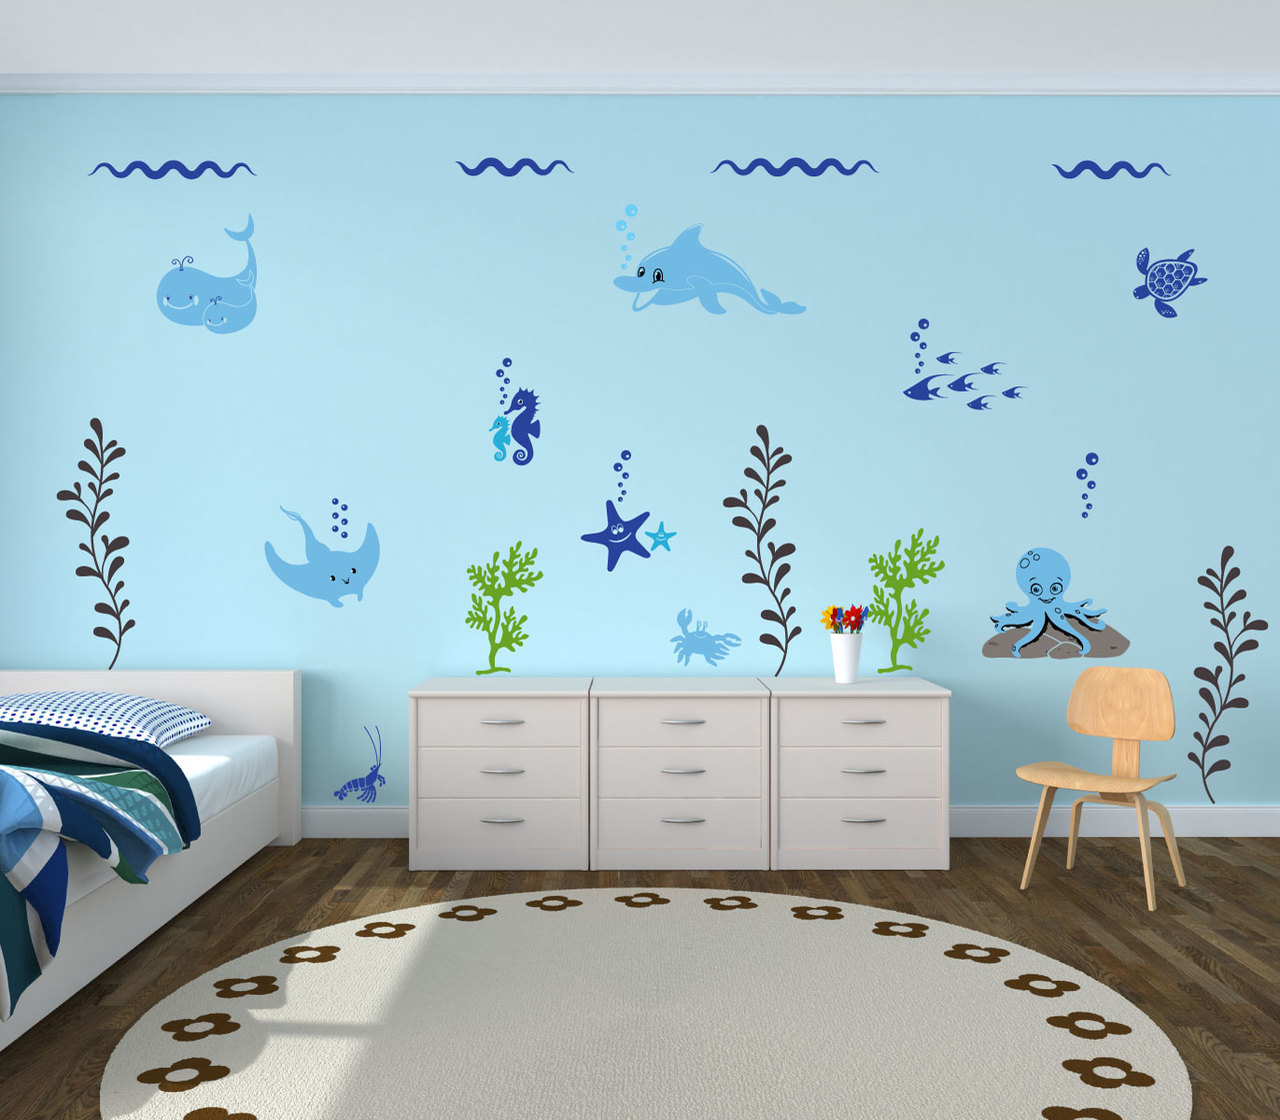 Ocean Themed Wall Decals For Decorating Kids Bedrooms